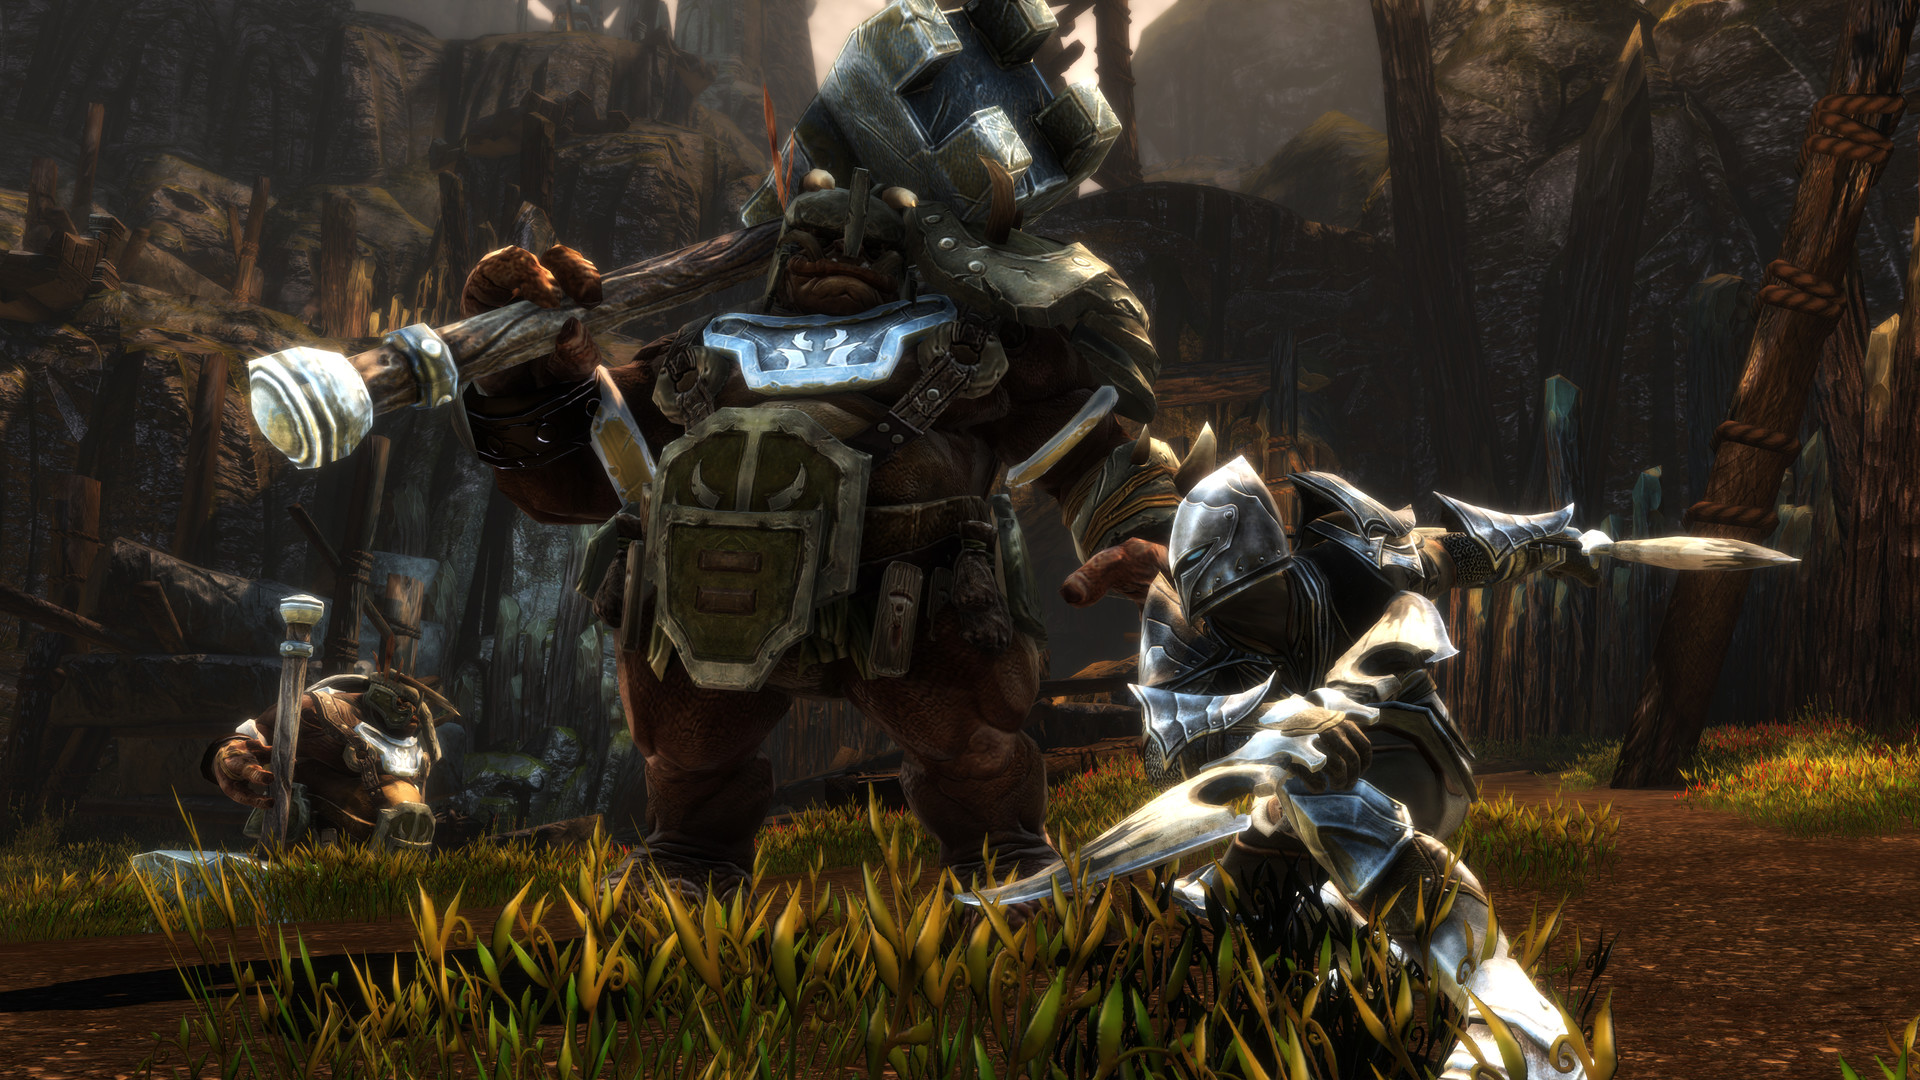 #Kingdoms of Amalur: Re-Reckoning FATE Edition